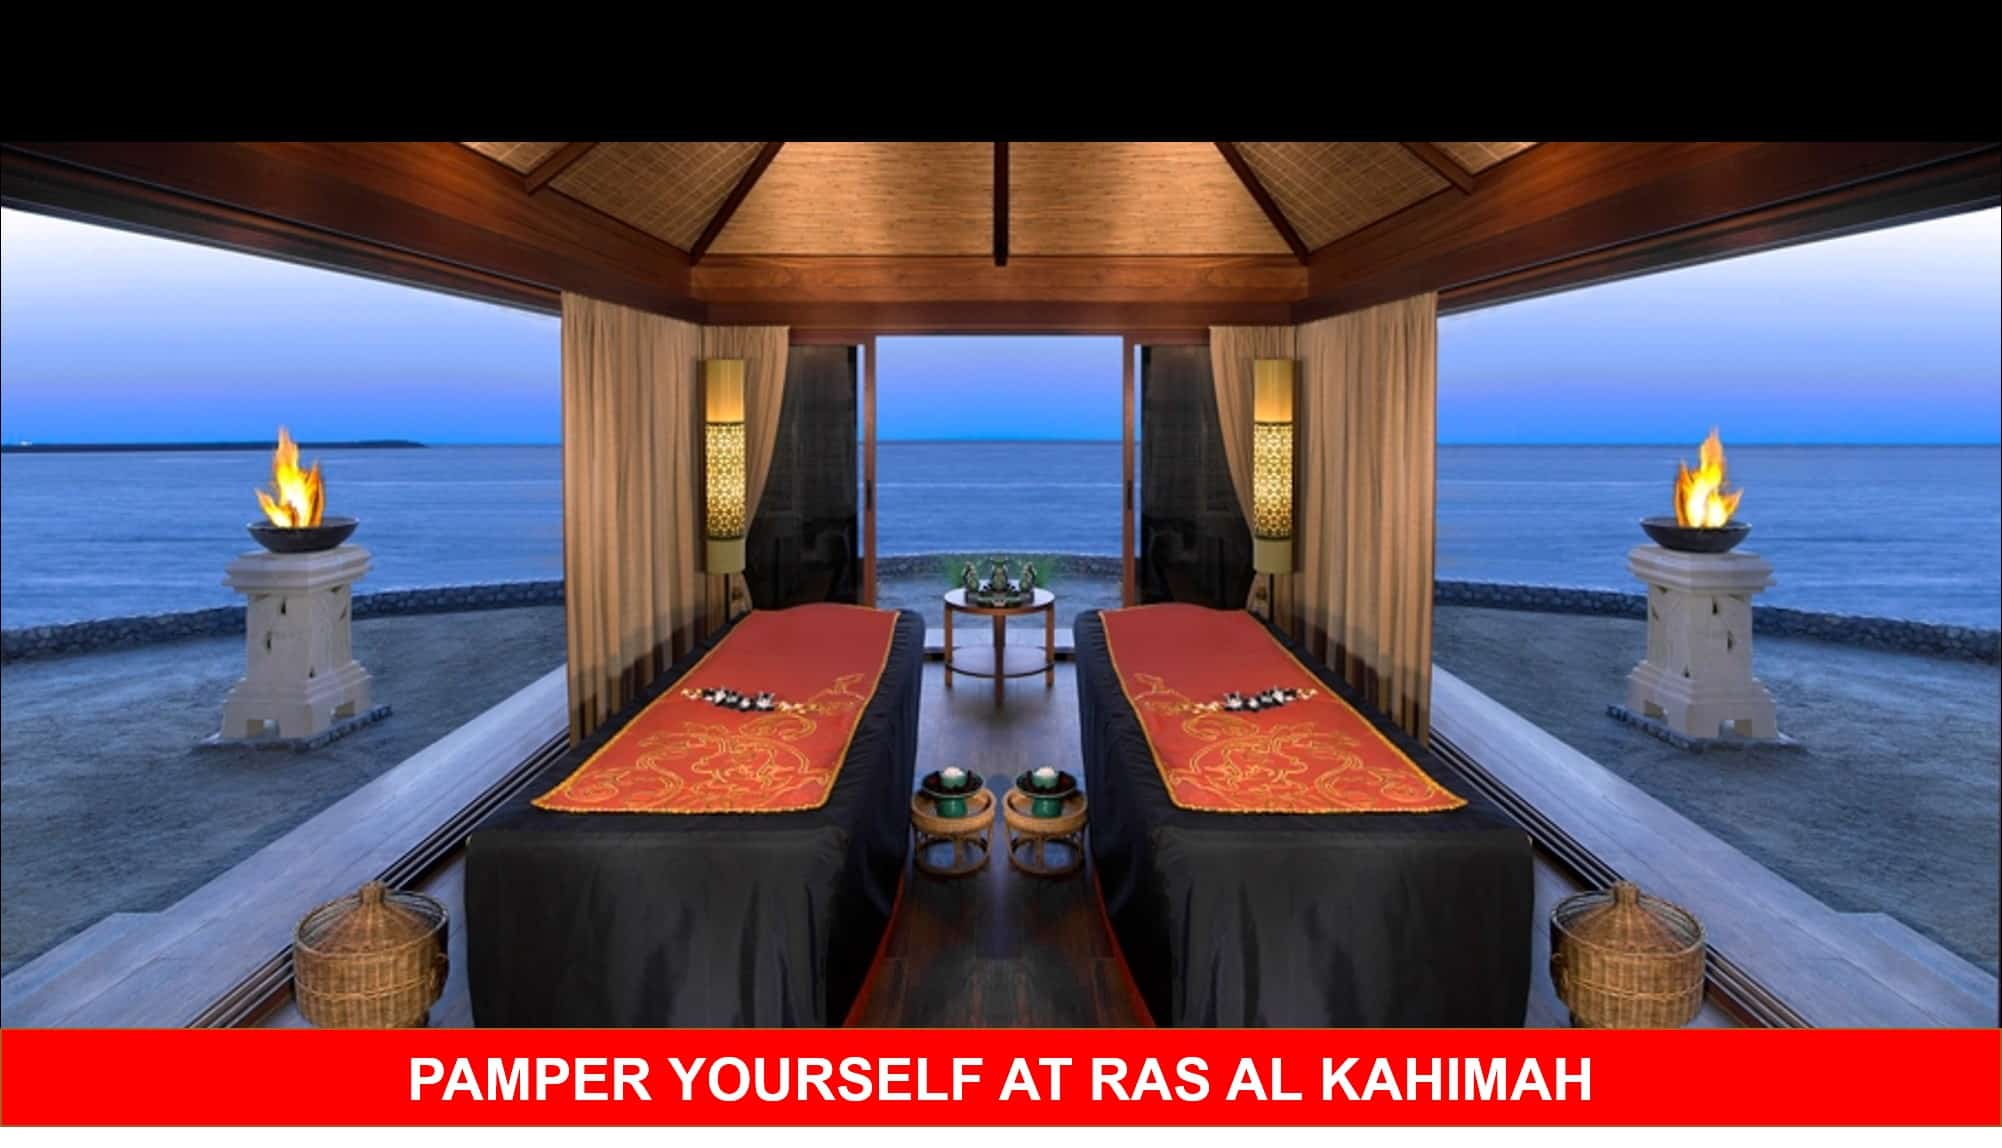 Ras Al Khaimah has tons of luxury spas and relaxing resorts